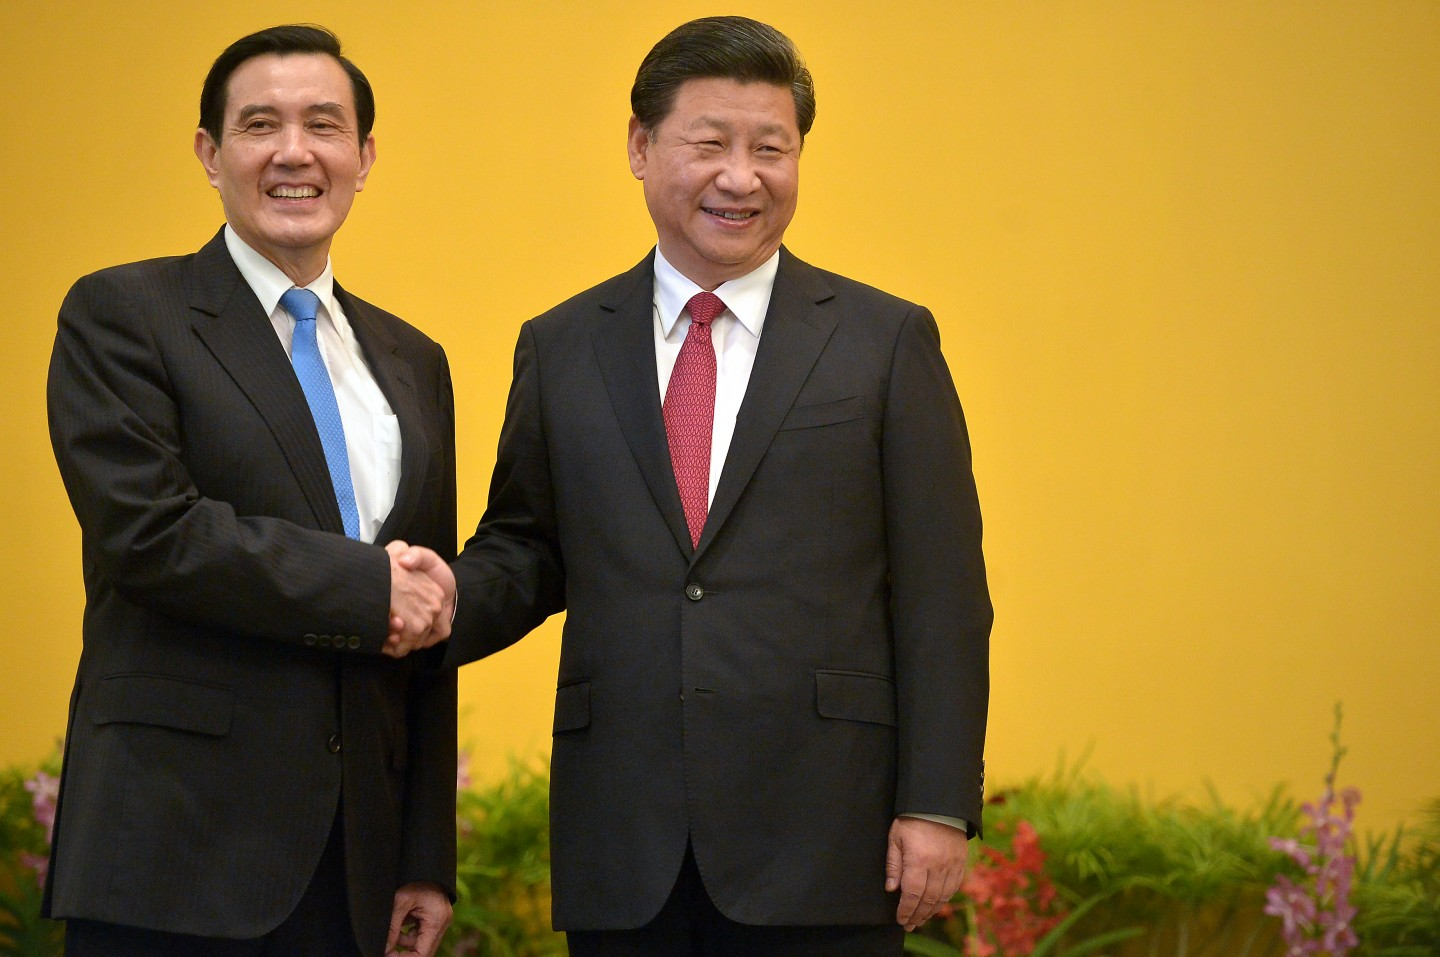 The historical meeting between Taiwanese President Ma Ying-jeou (left) and Chinese President Xi Jinping on 7 November 2015. The summit in Singapore is the first meeting between the presidents of both sides since the Chinese civil war ended in 1949. (SPH)